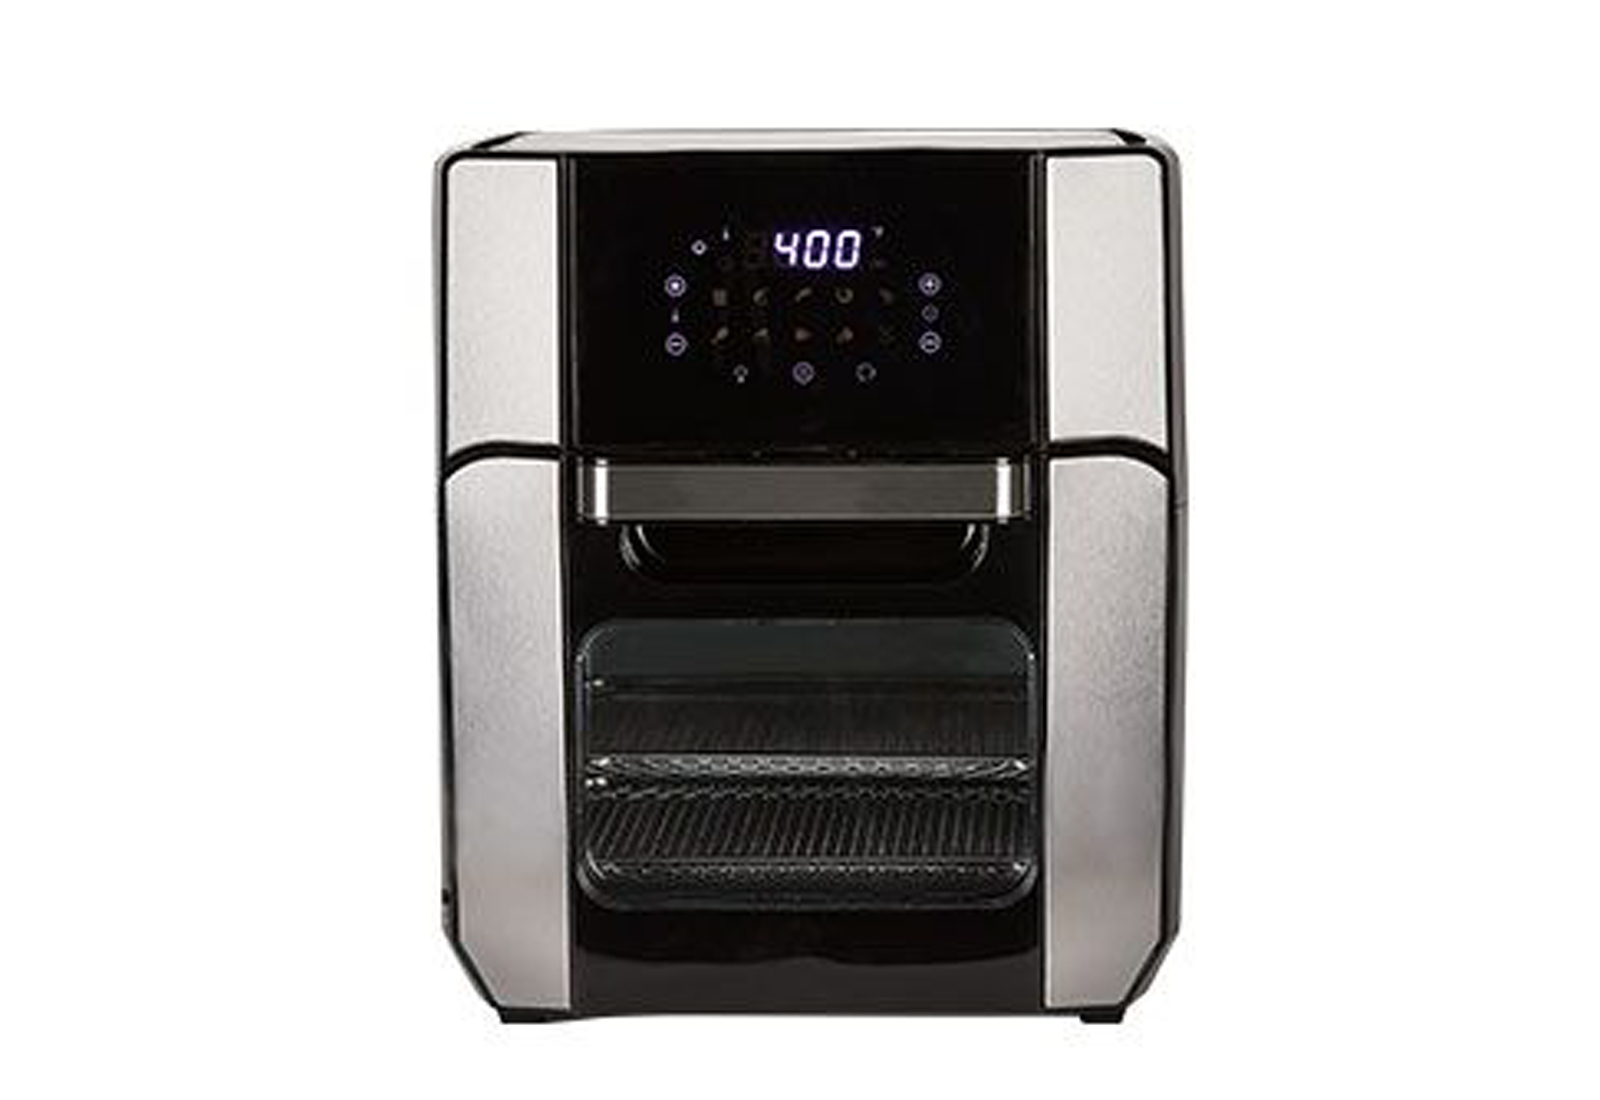 PowerXL Air Fryer Pro Product Image